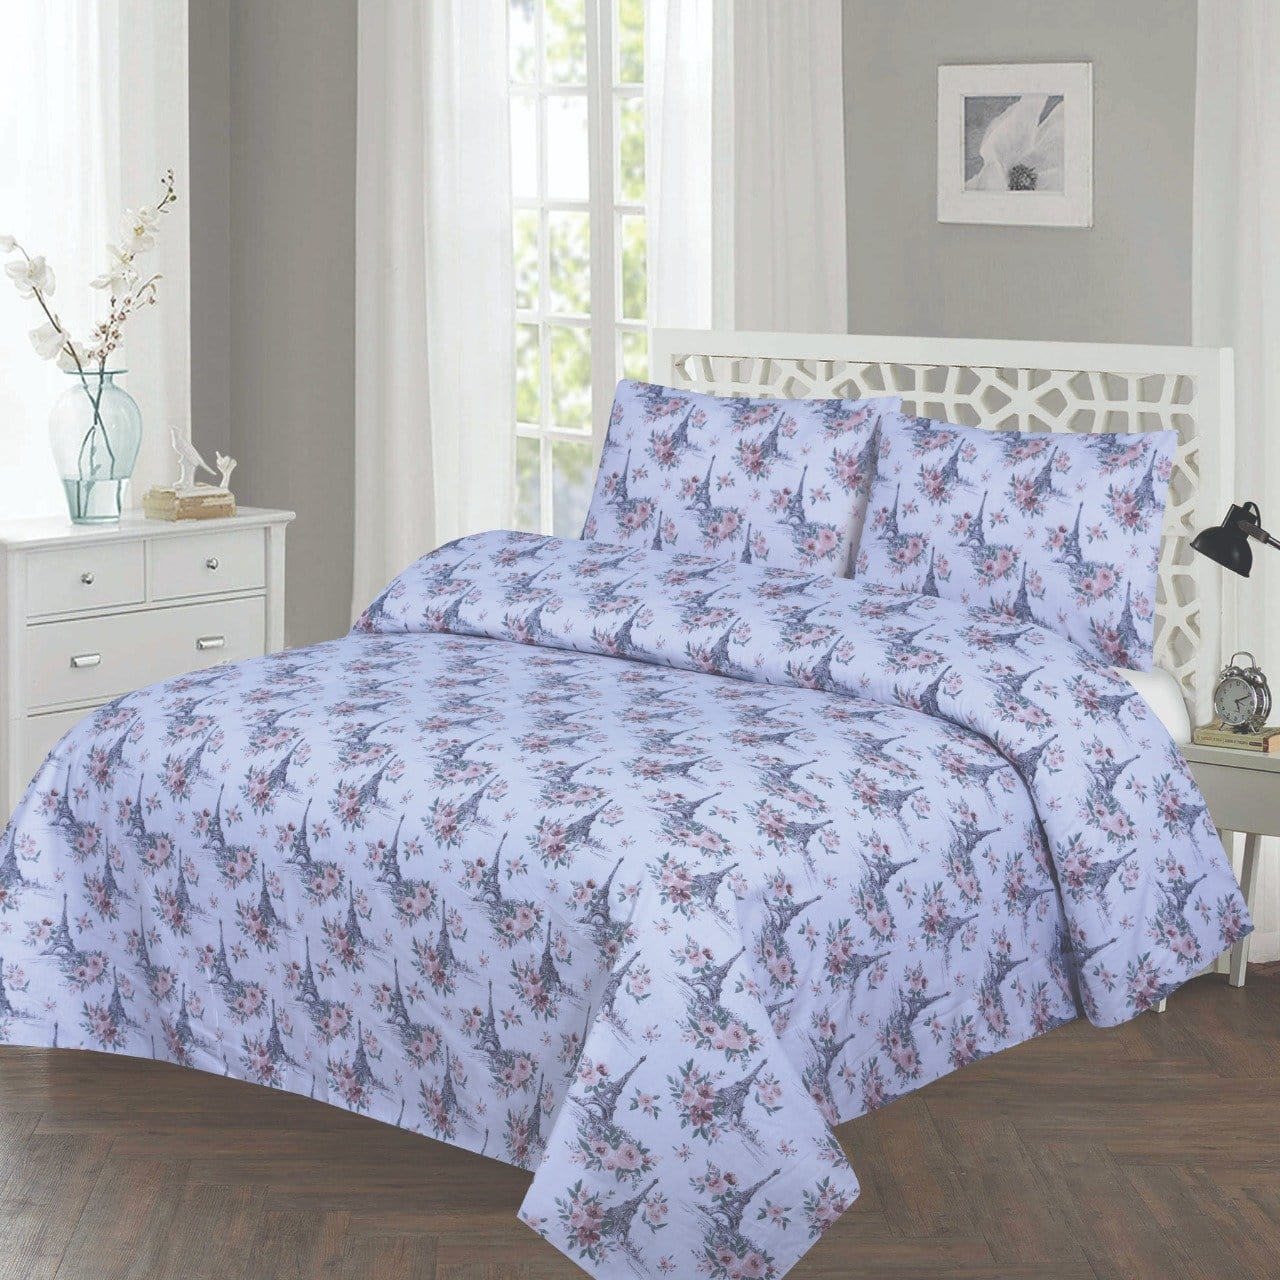 Grace D237-Cotton PC King Size Bedsheet with 2 Pillow Covers.